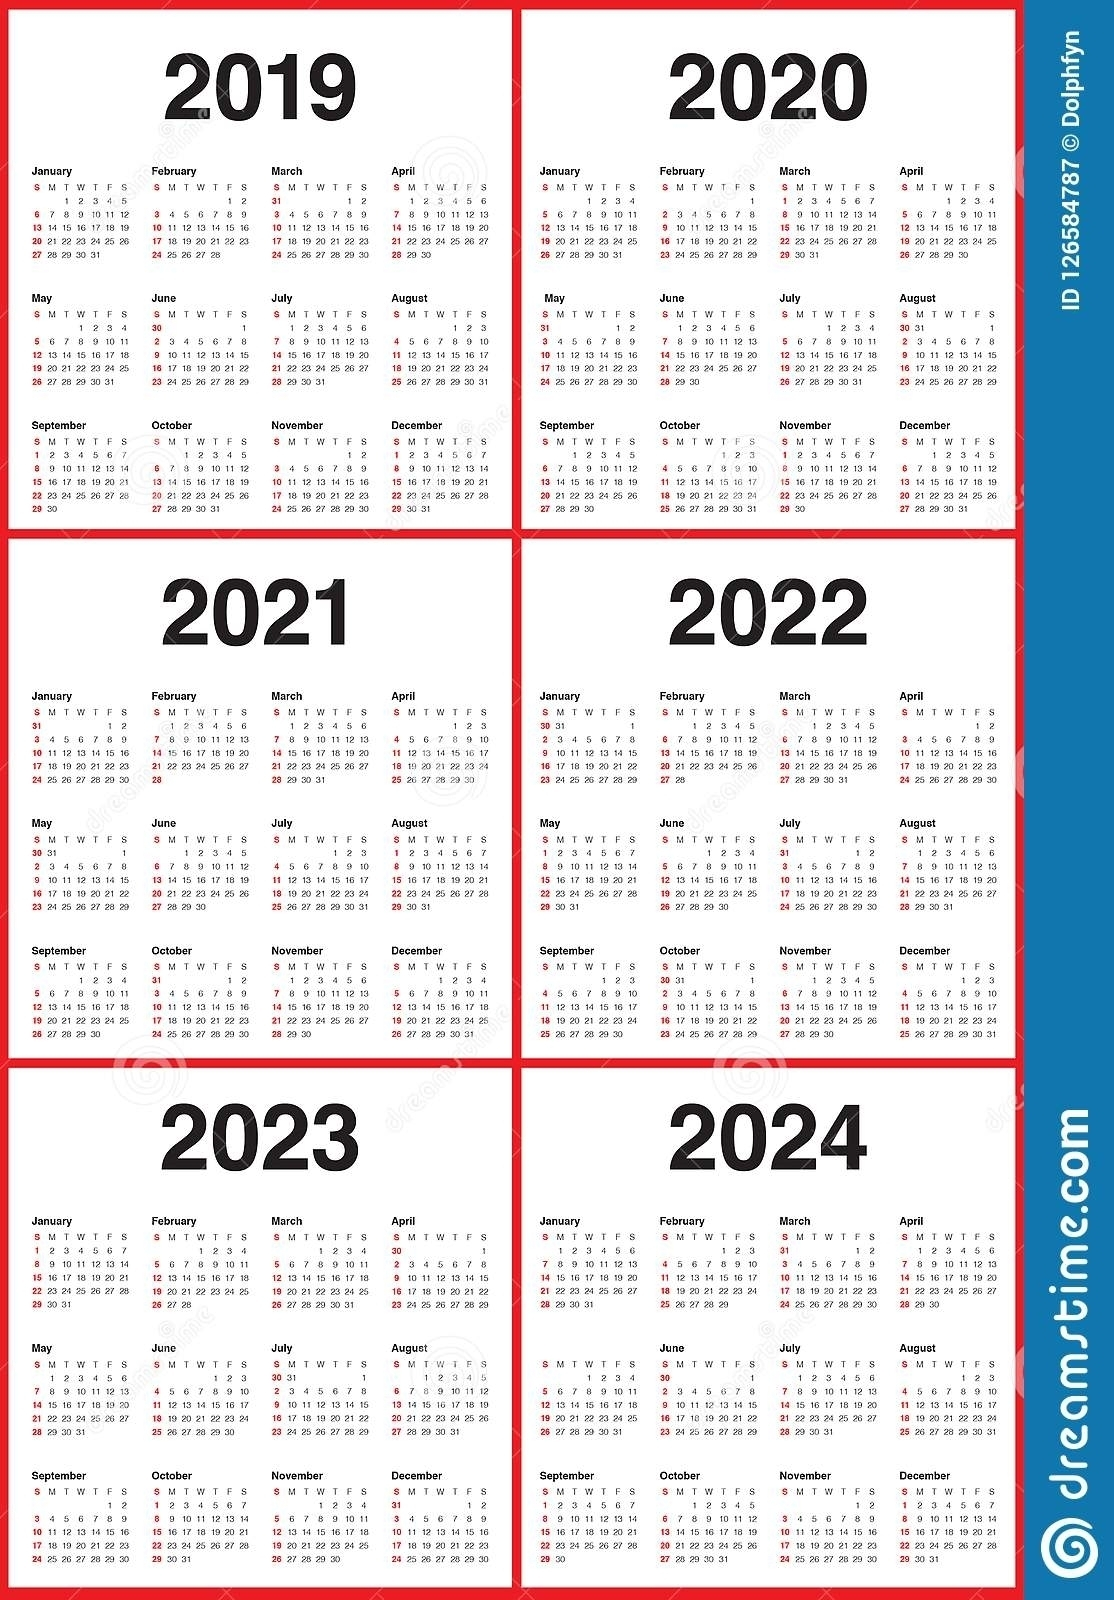 Lovely 3 Year Calendar 2022 To 2024 : Mini Calendar Template within Calendar Print Out 2019 2020 2021 2022